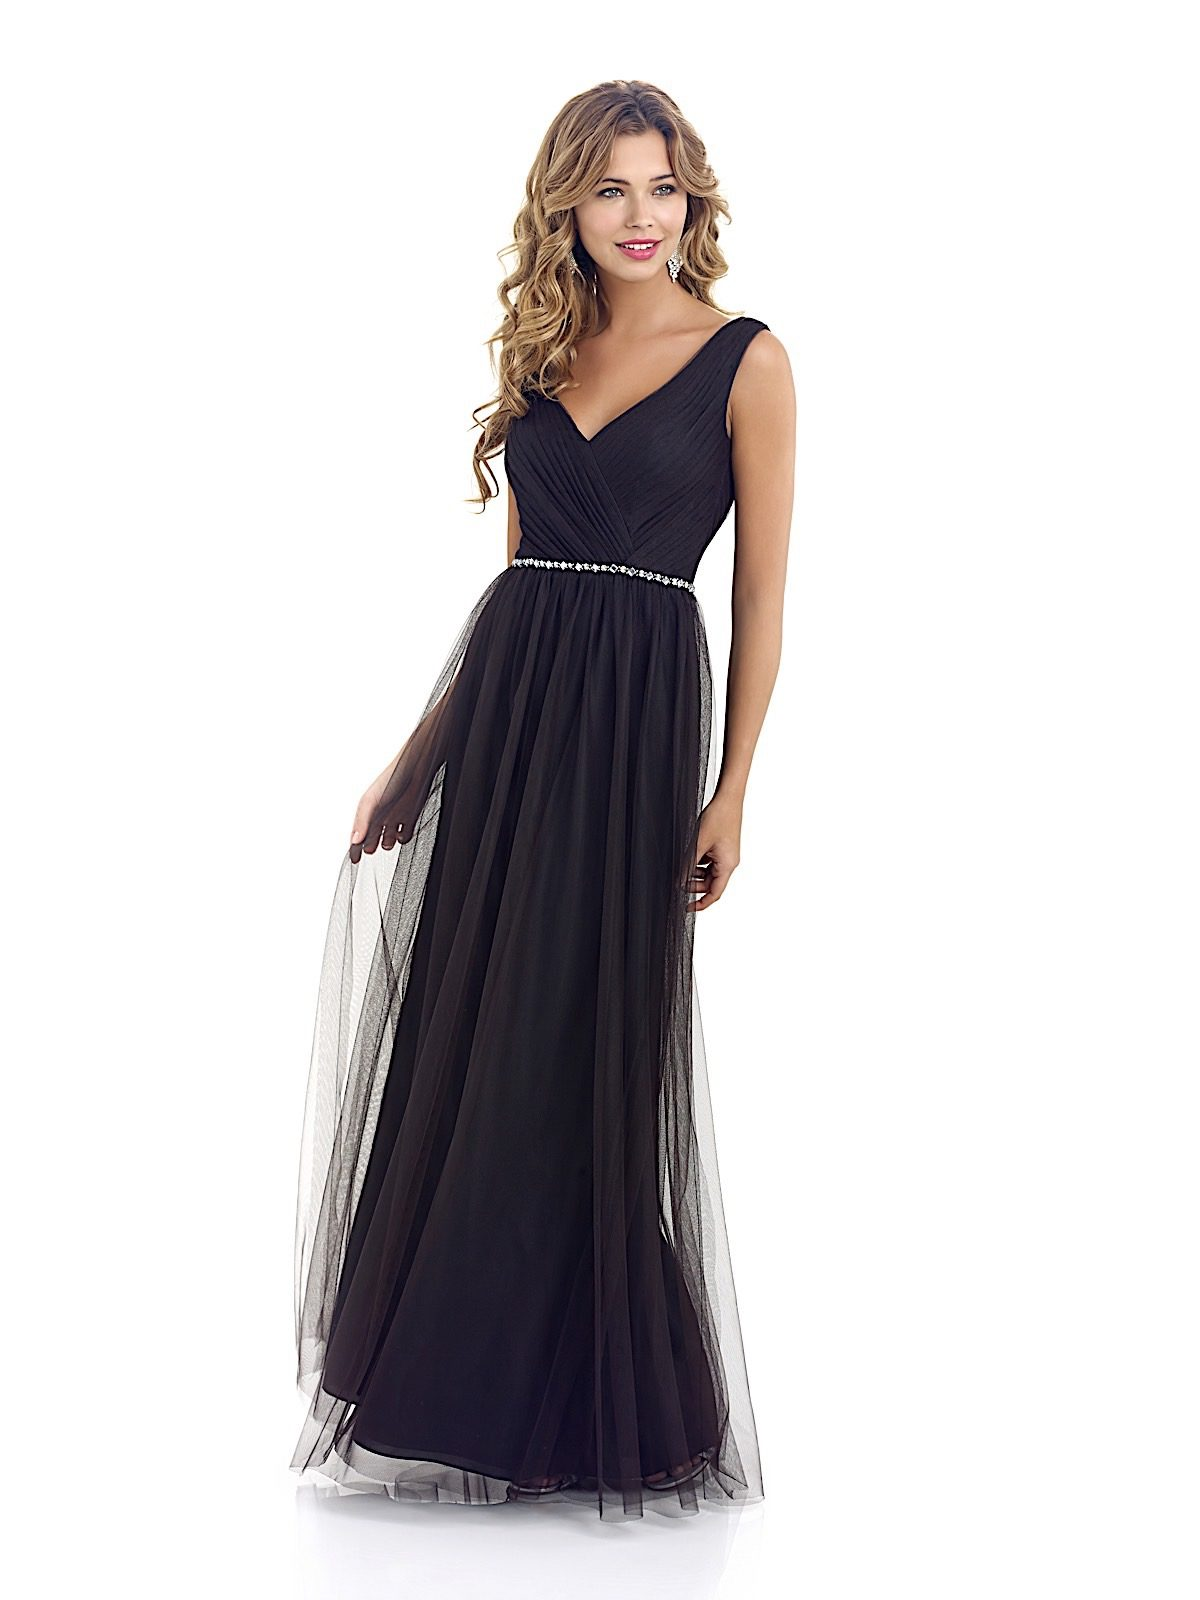 Sale Formal Dresses In Gold Coast The Bridal Company